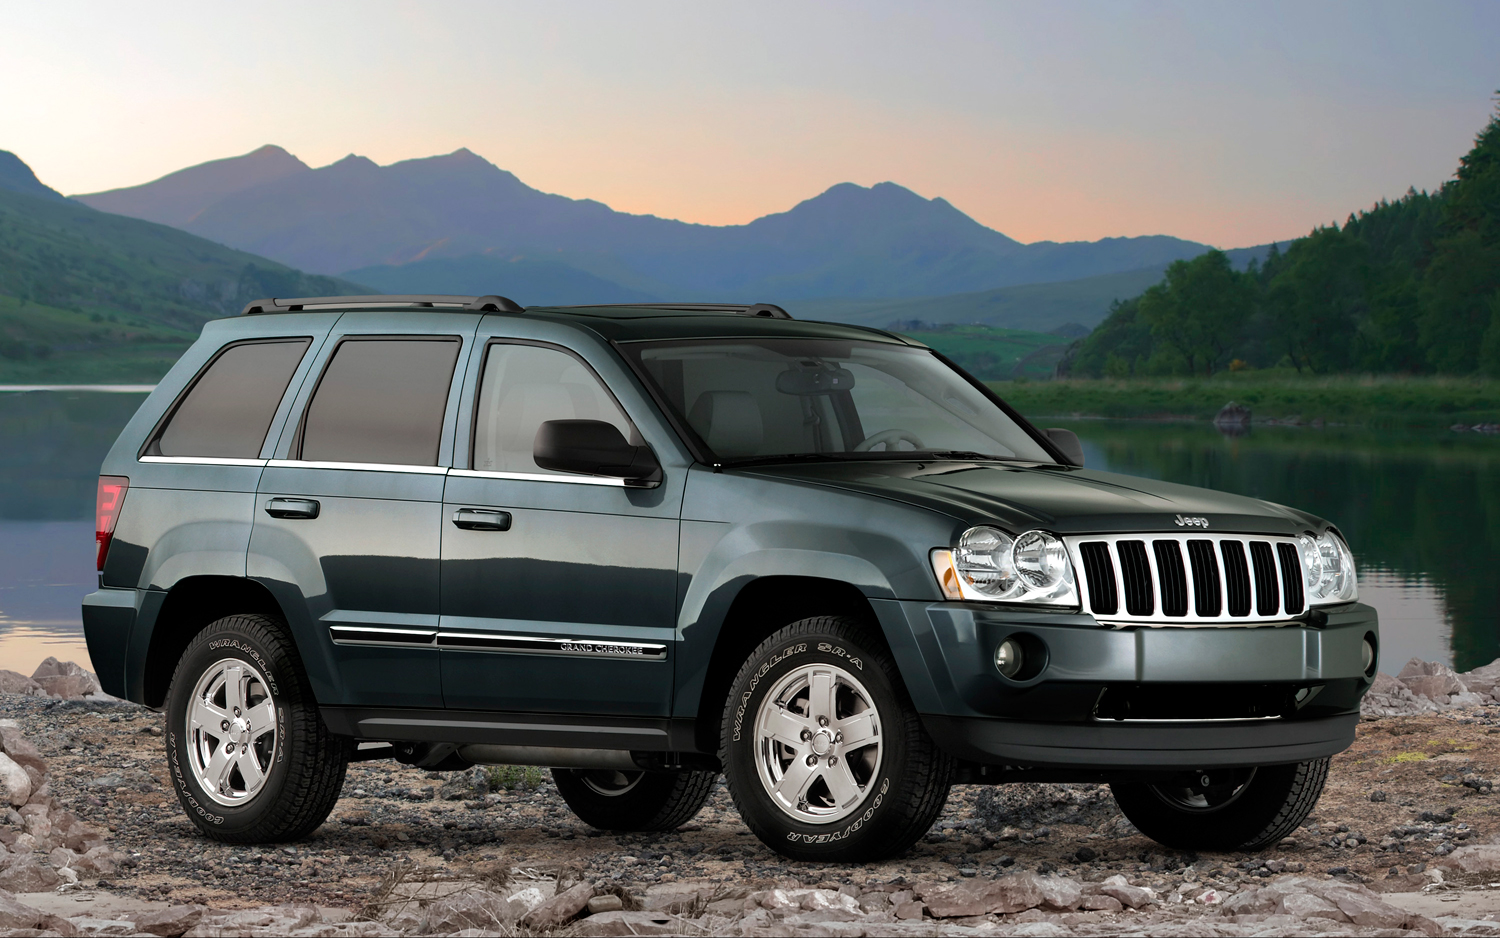 Captivating 2007 Jeep Grand Cherokee Front Three Quarter